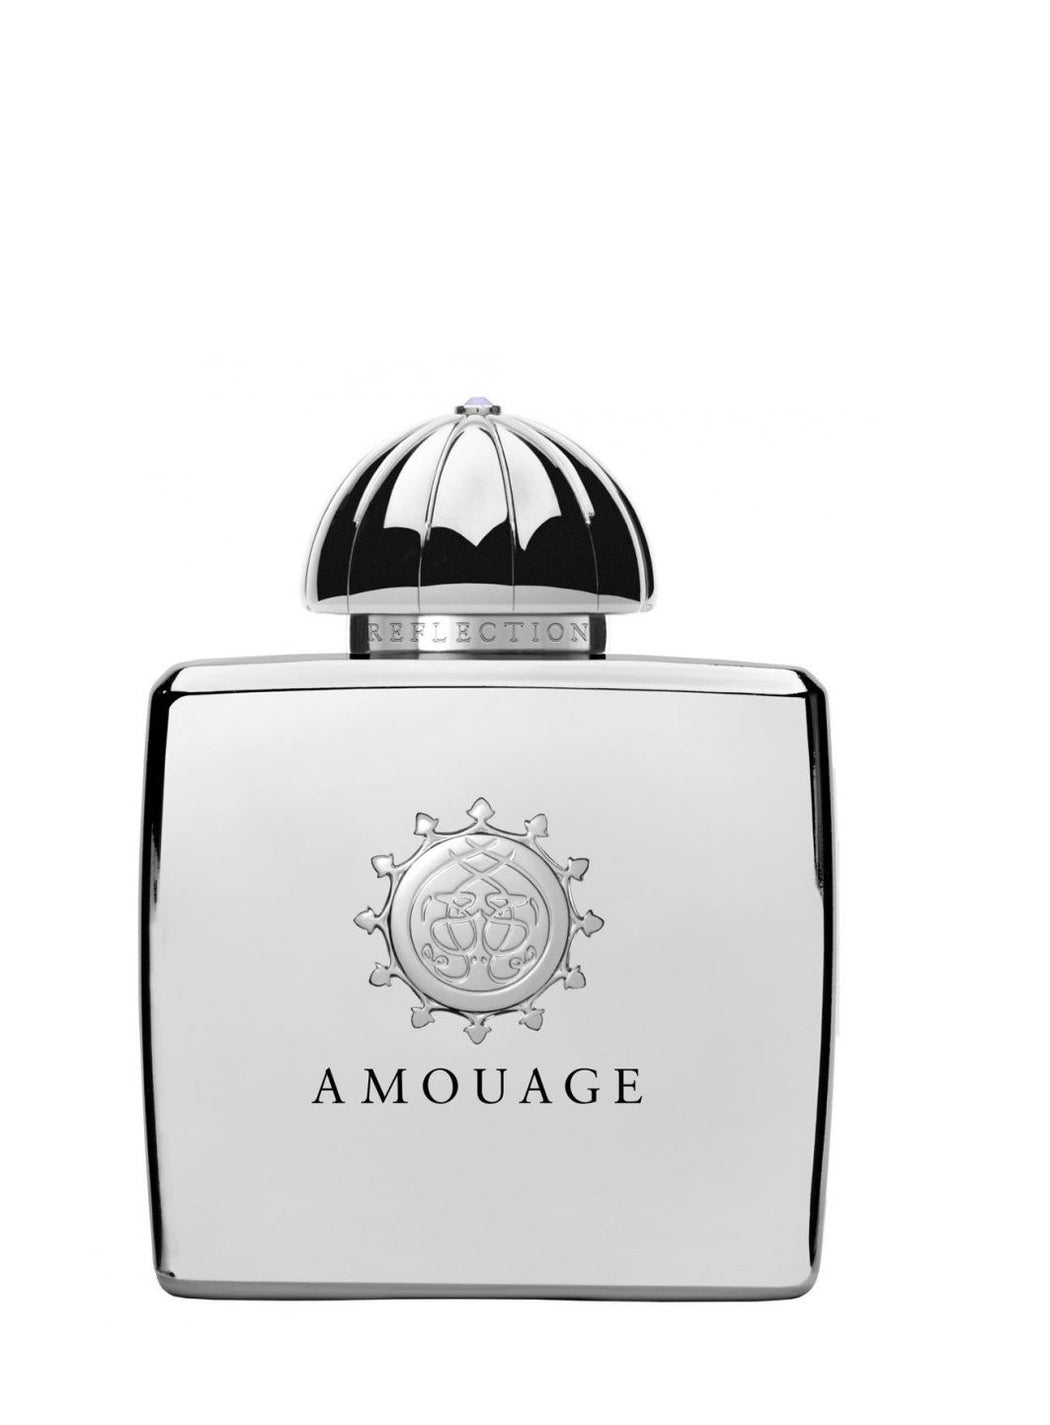 AMOUAGE Reflection 100ml